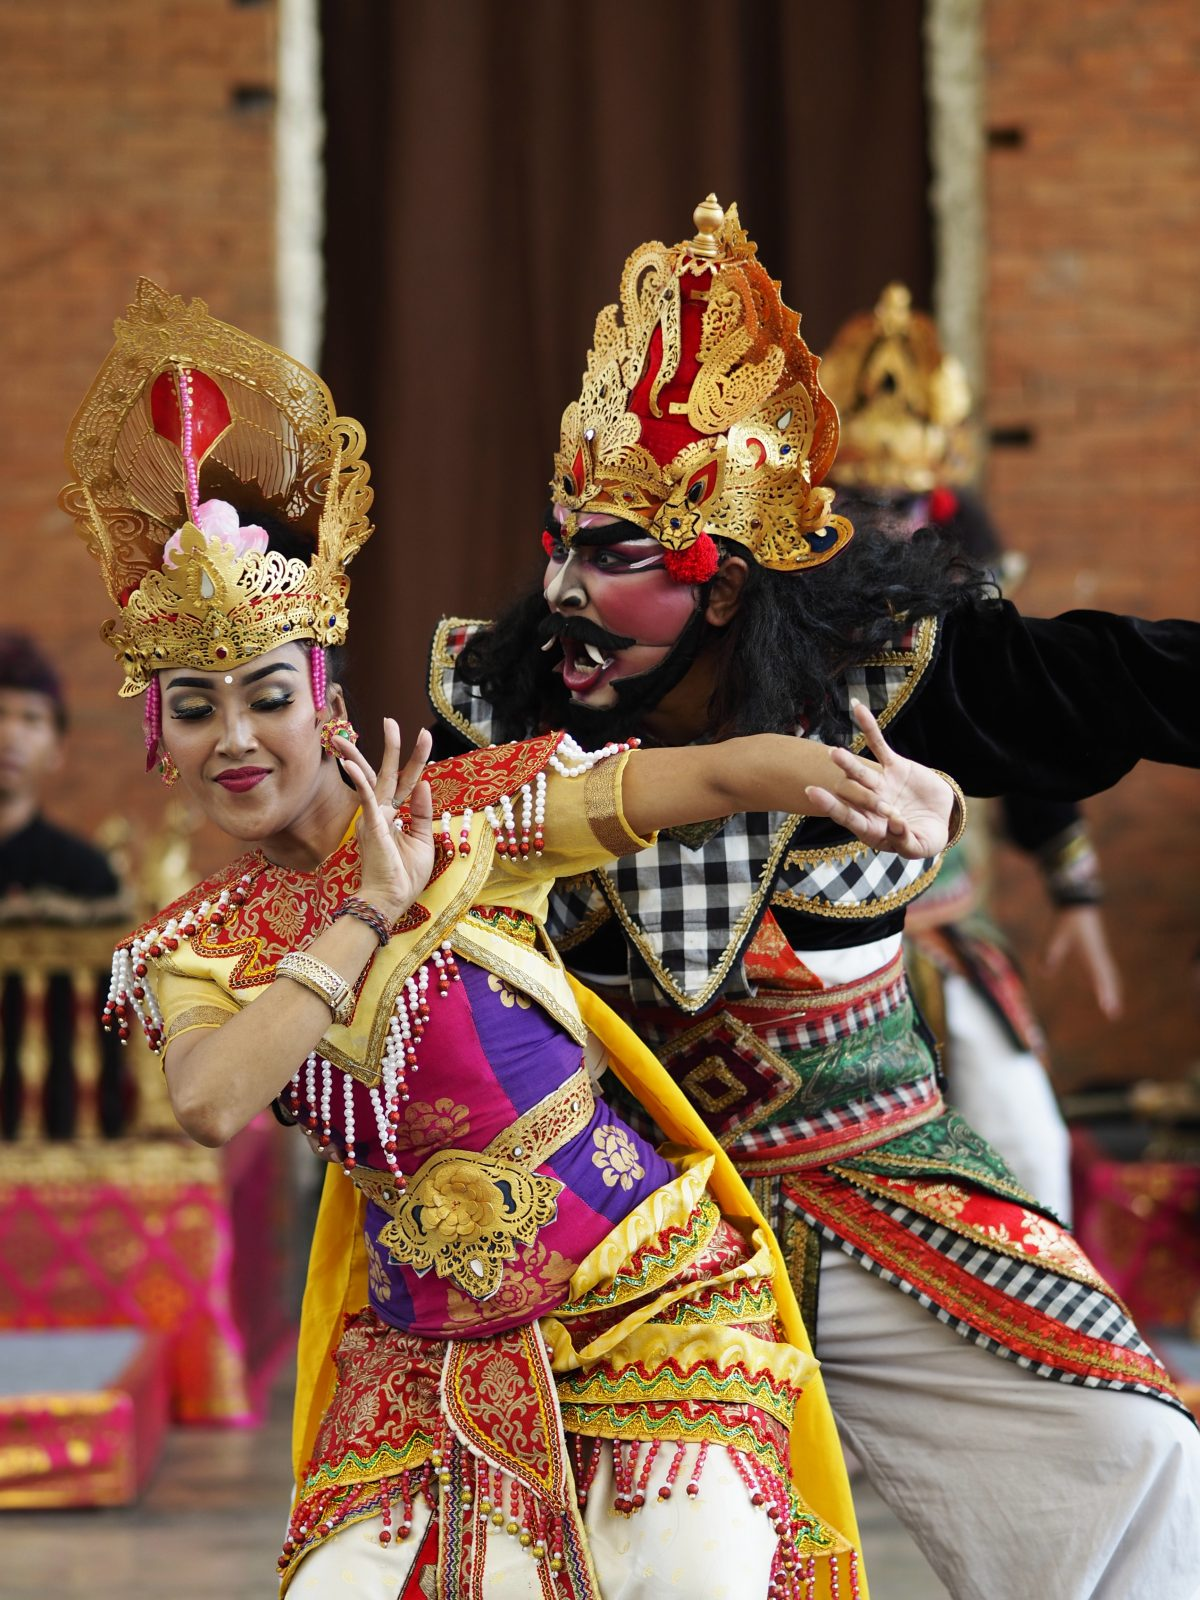 Balinese Legong dance performance